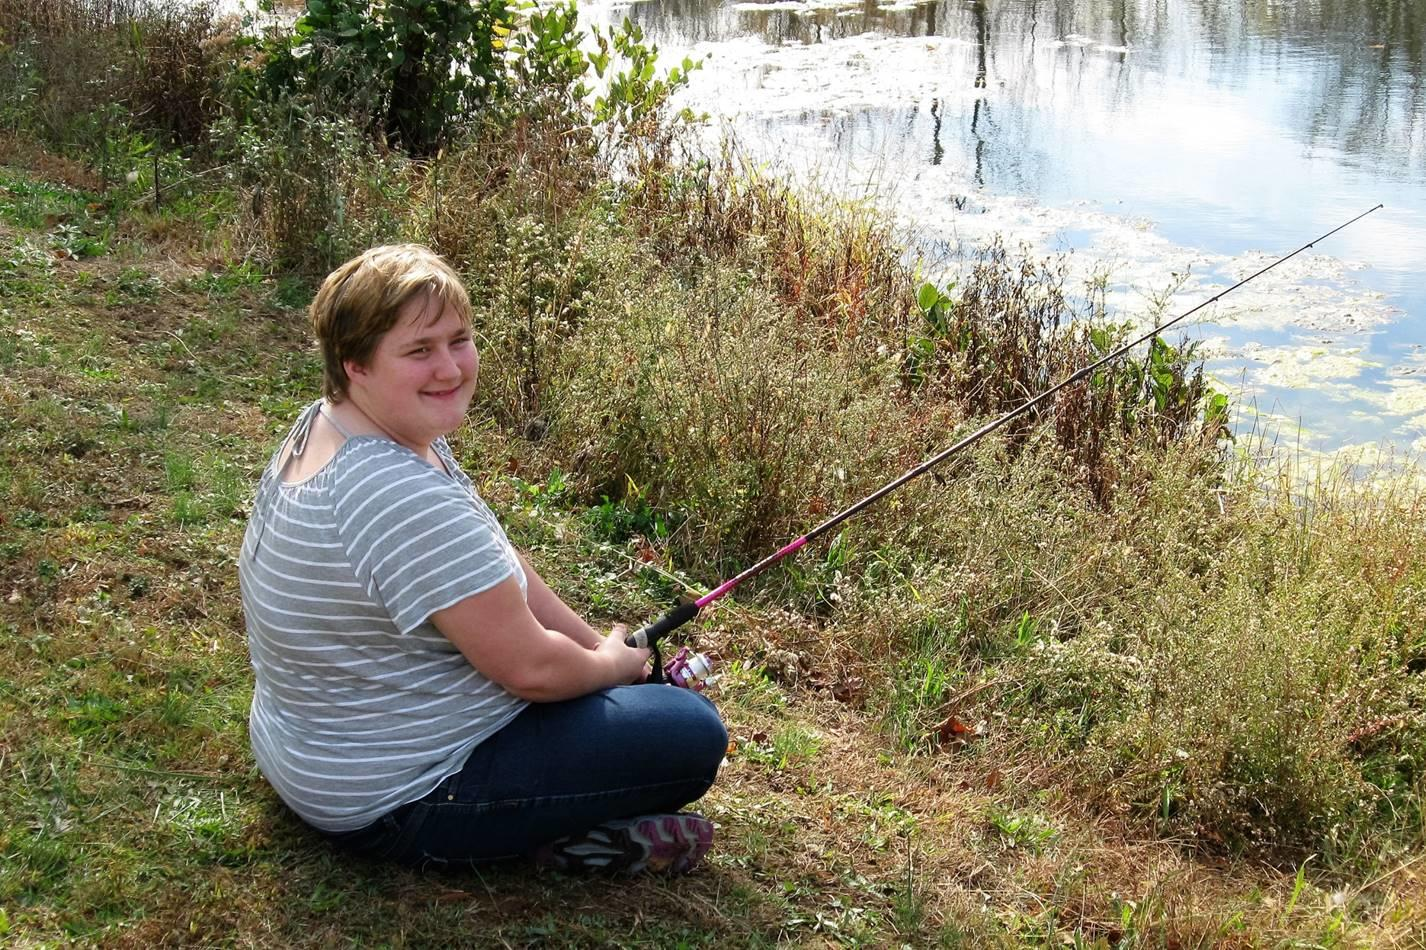 A student fishing from the bank of a pond